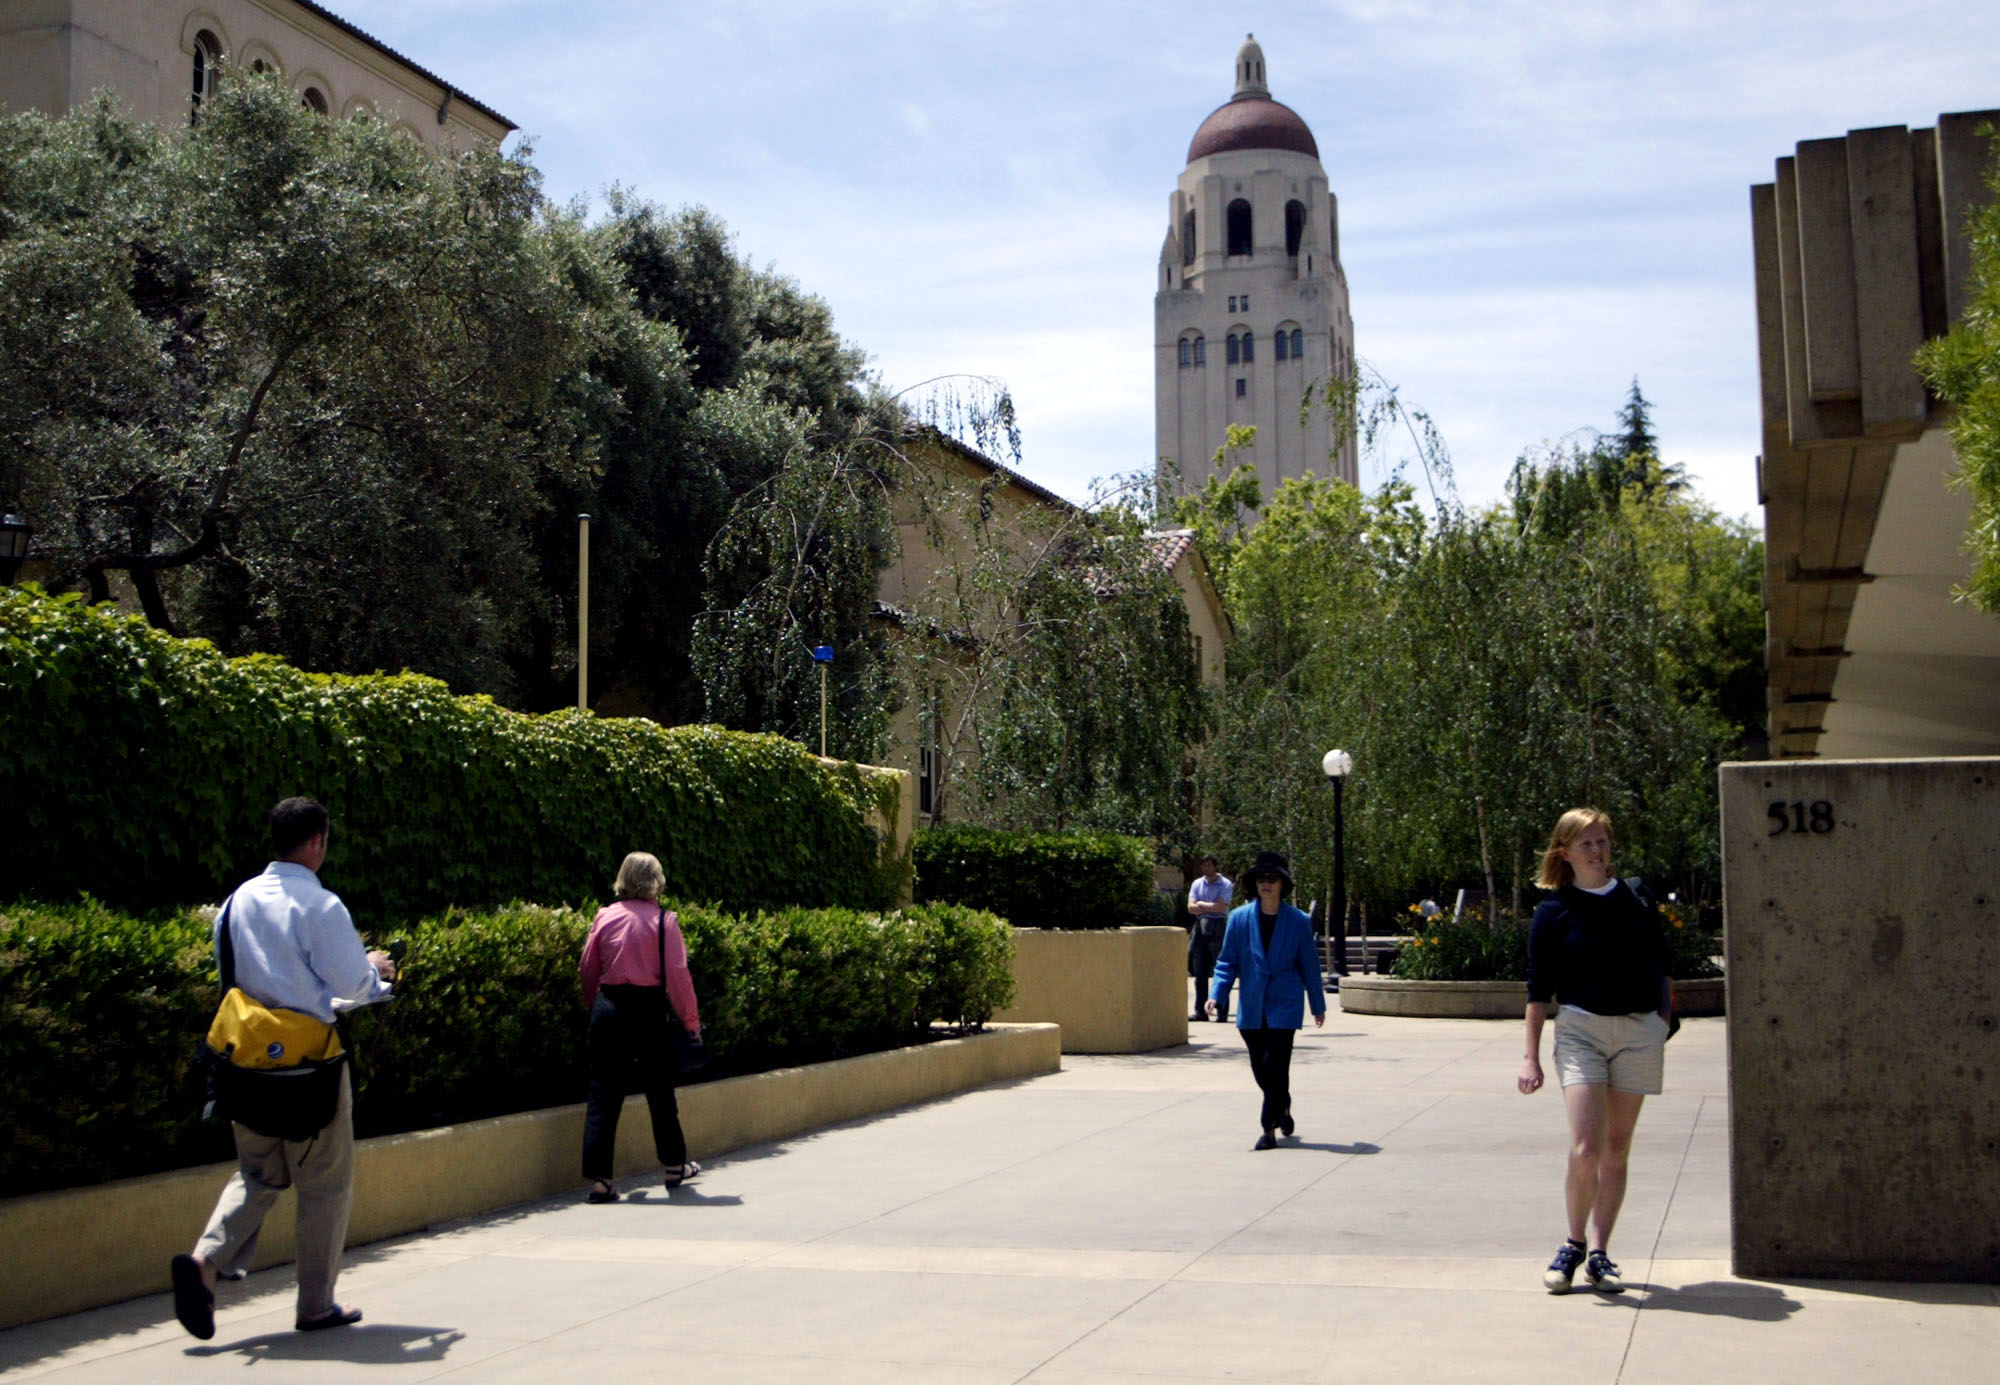 Students walk past Stanford University's Graduate School of